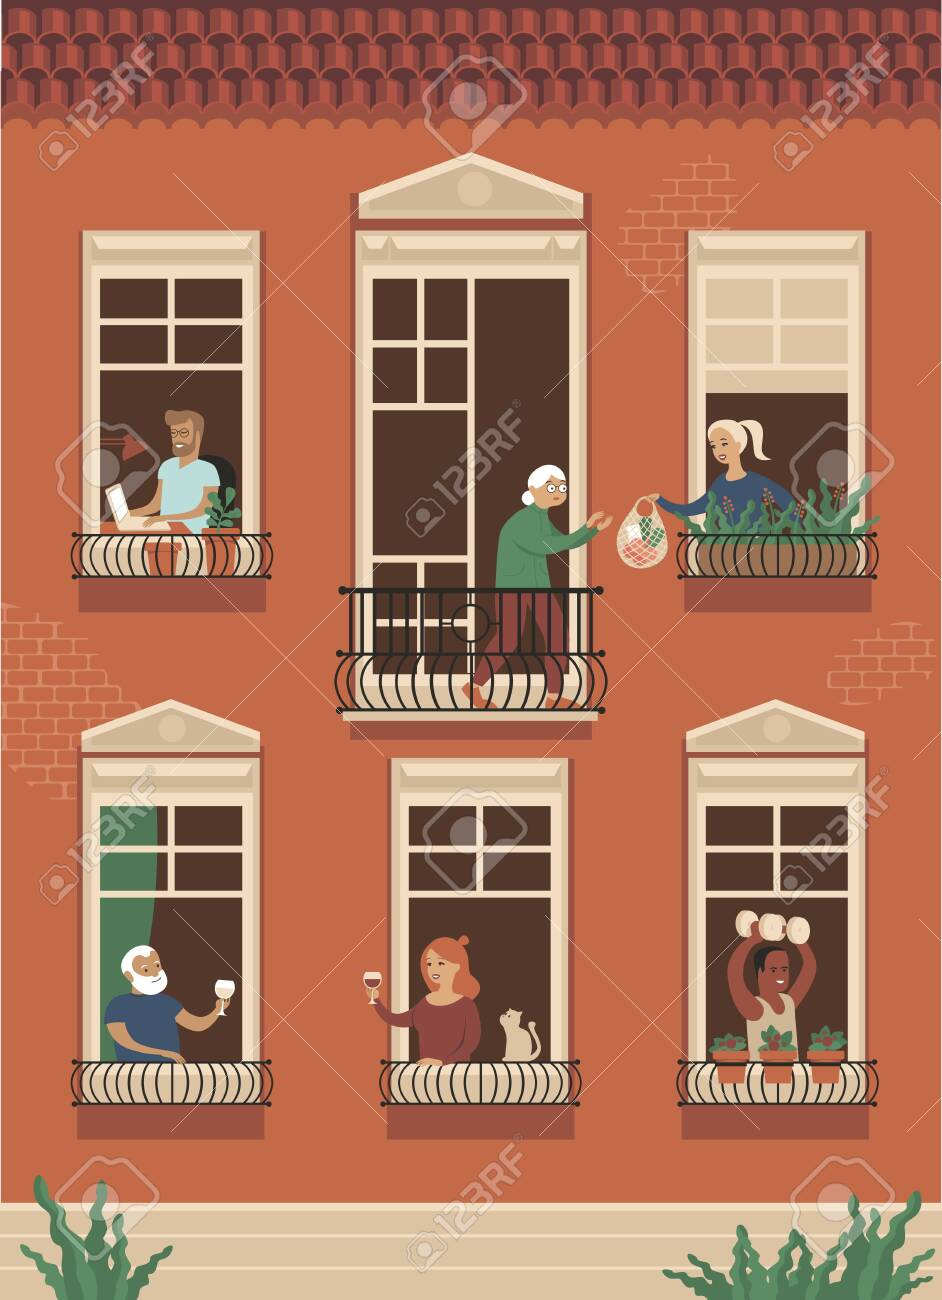 Neighbor people life through open windows. Housemates working, drinking wine, doing sport exercisessupports elderly people during self isolation. - 142826246